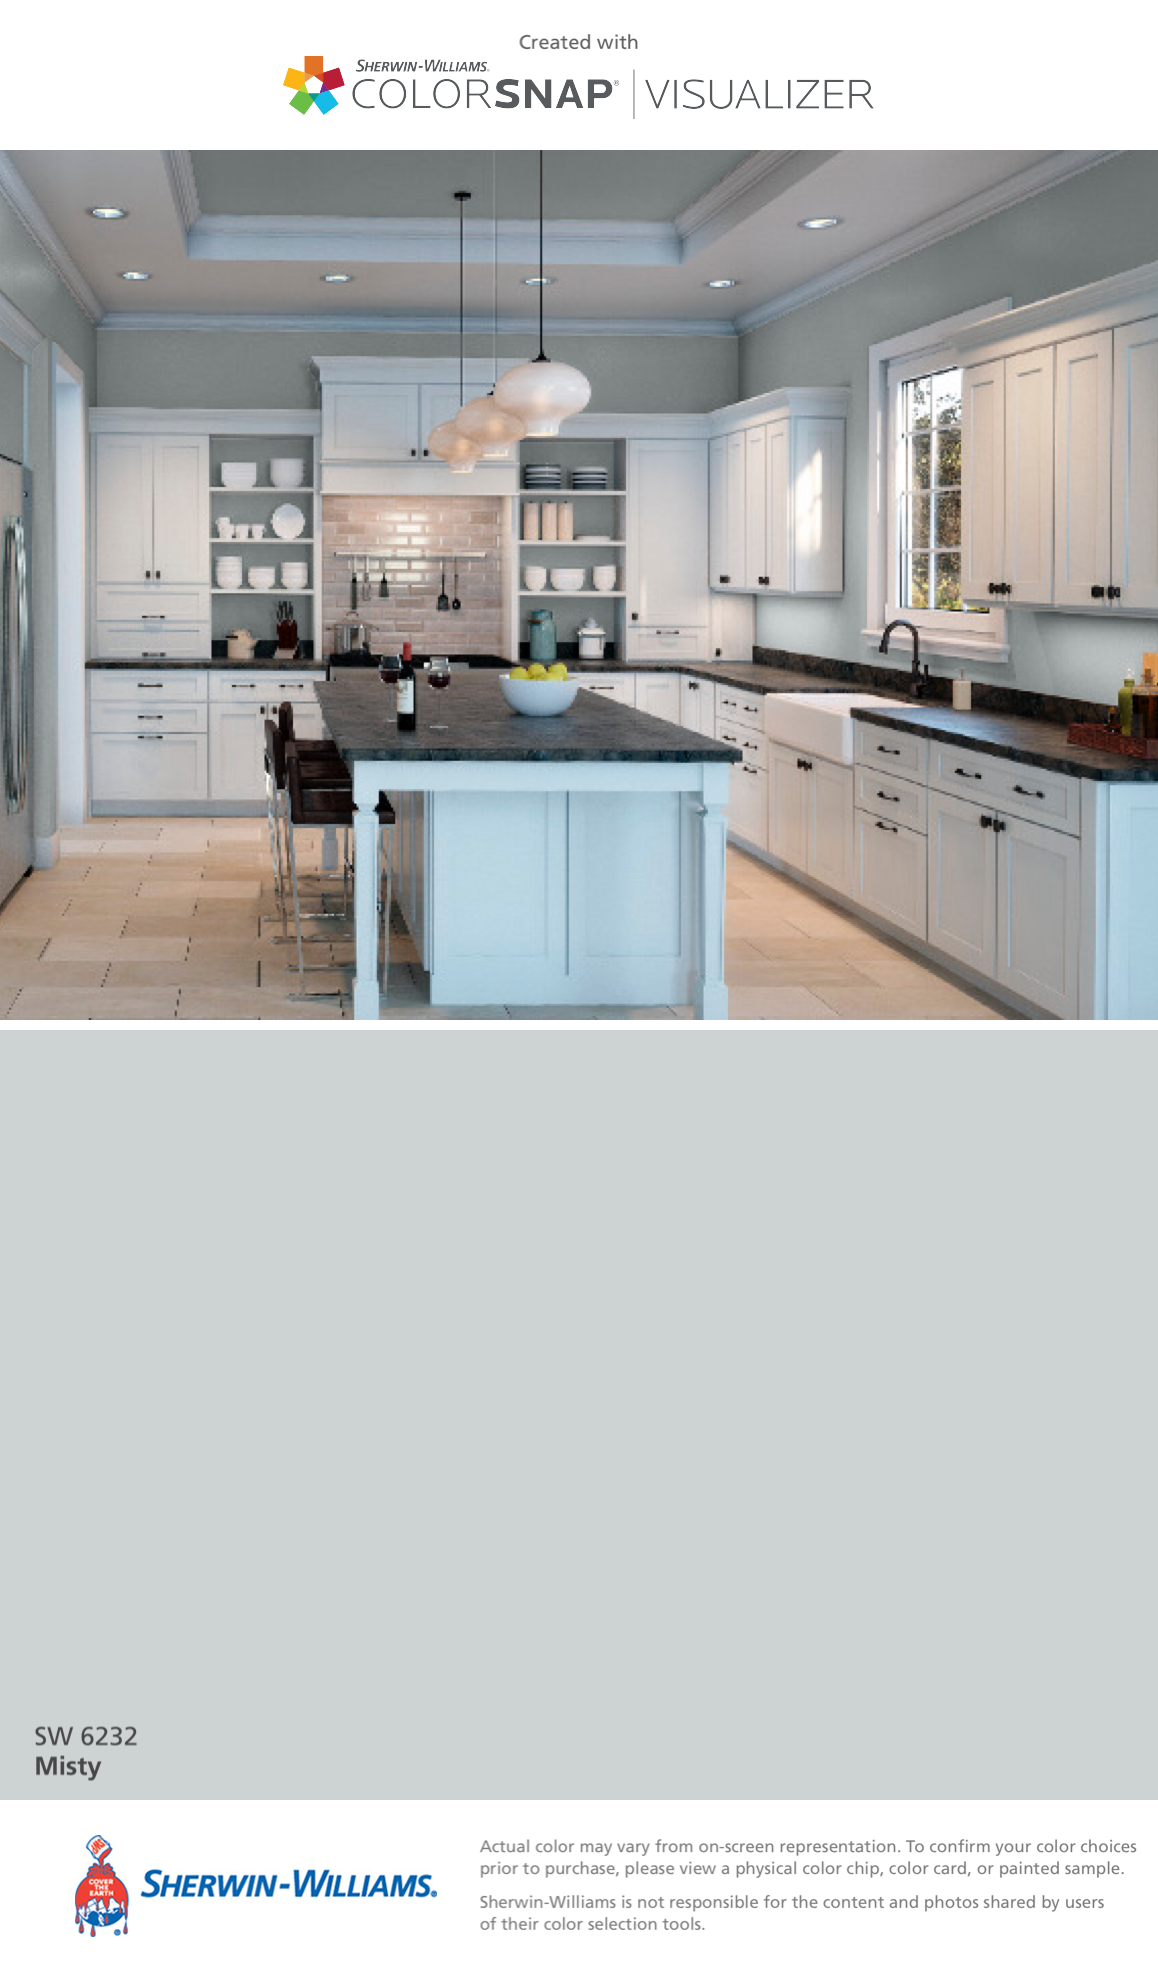 I Found This Color With Colorsnap Visualizer For Iphone By Sherwin Williams Misty Sw 6232